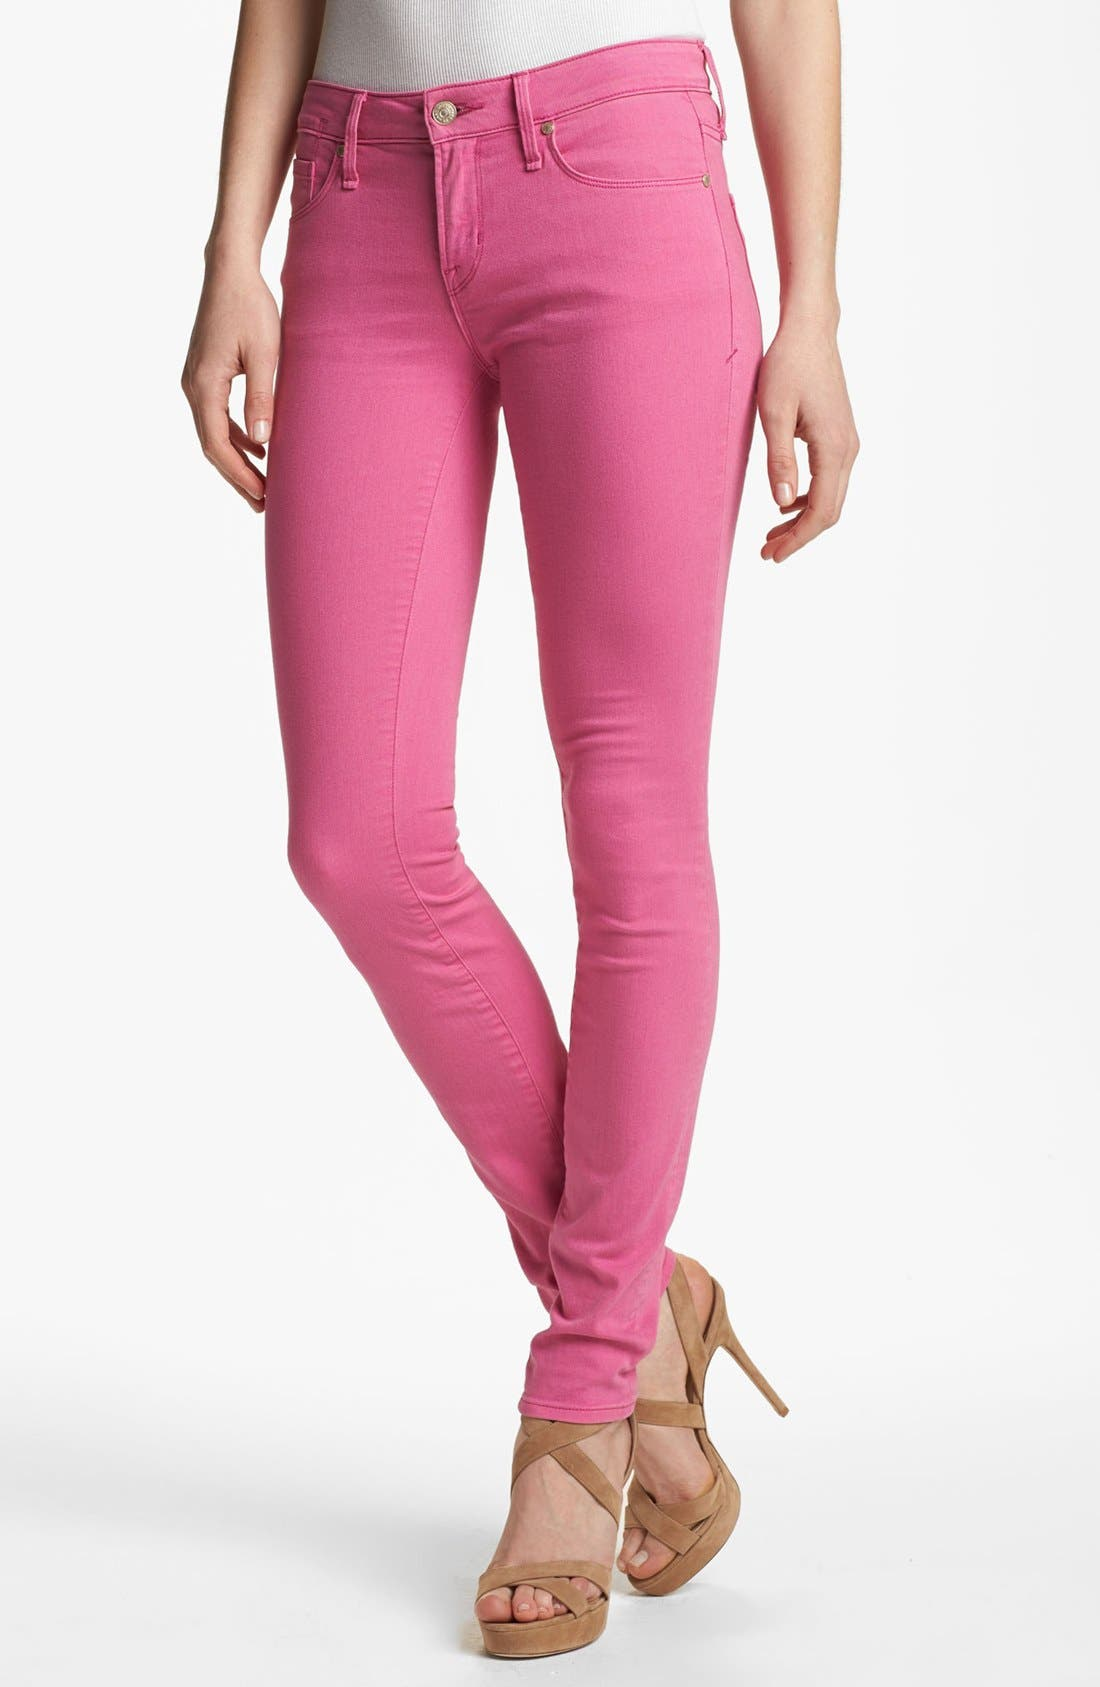 Main Image - MARC BY MARC JACOBS 'Gaia' Colored Super Skinny Stretch Jeans (Magenta Petal)